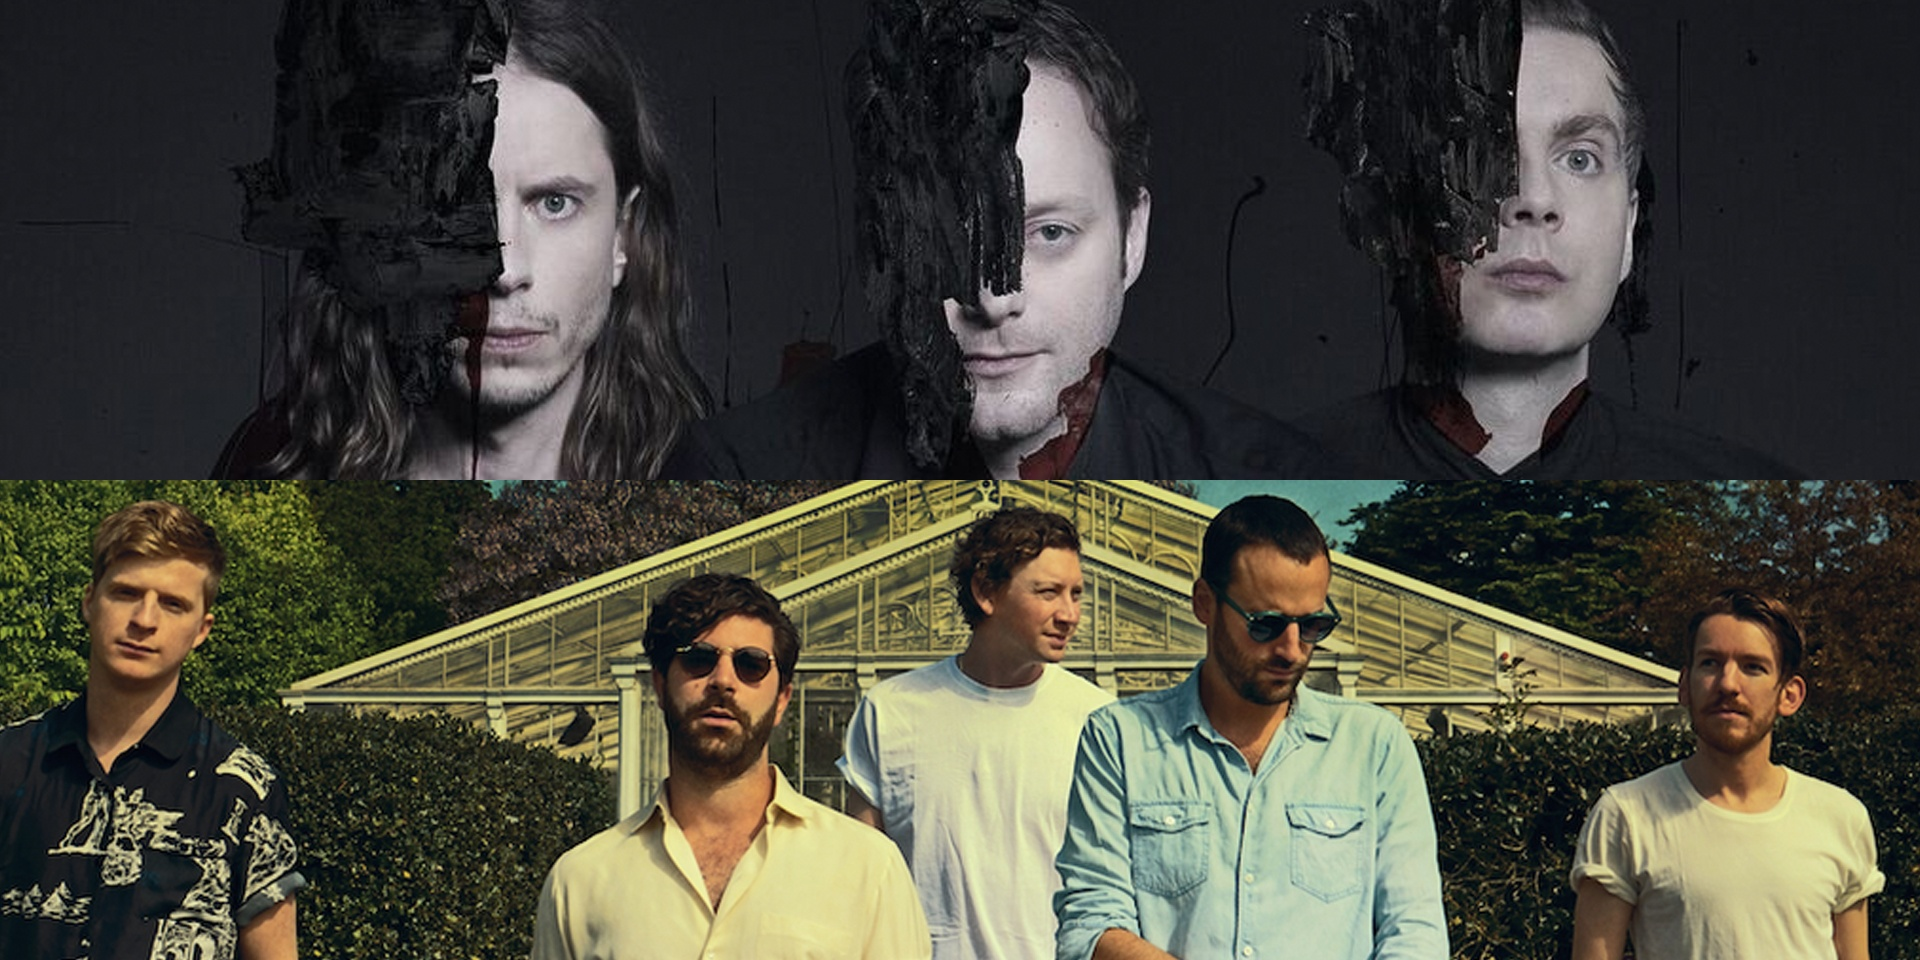 Foals and Sigur Ros to headline Neon Lights 2016 in Singapore